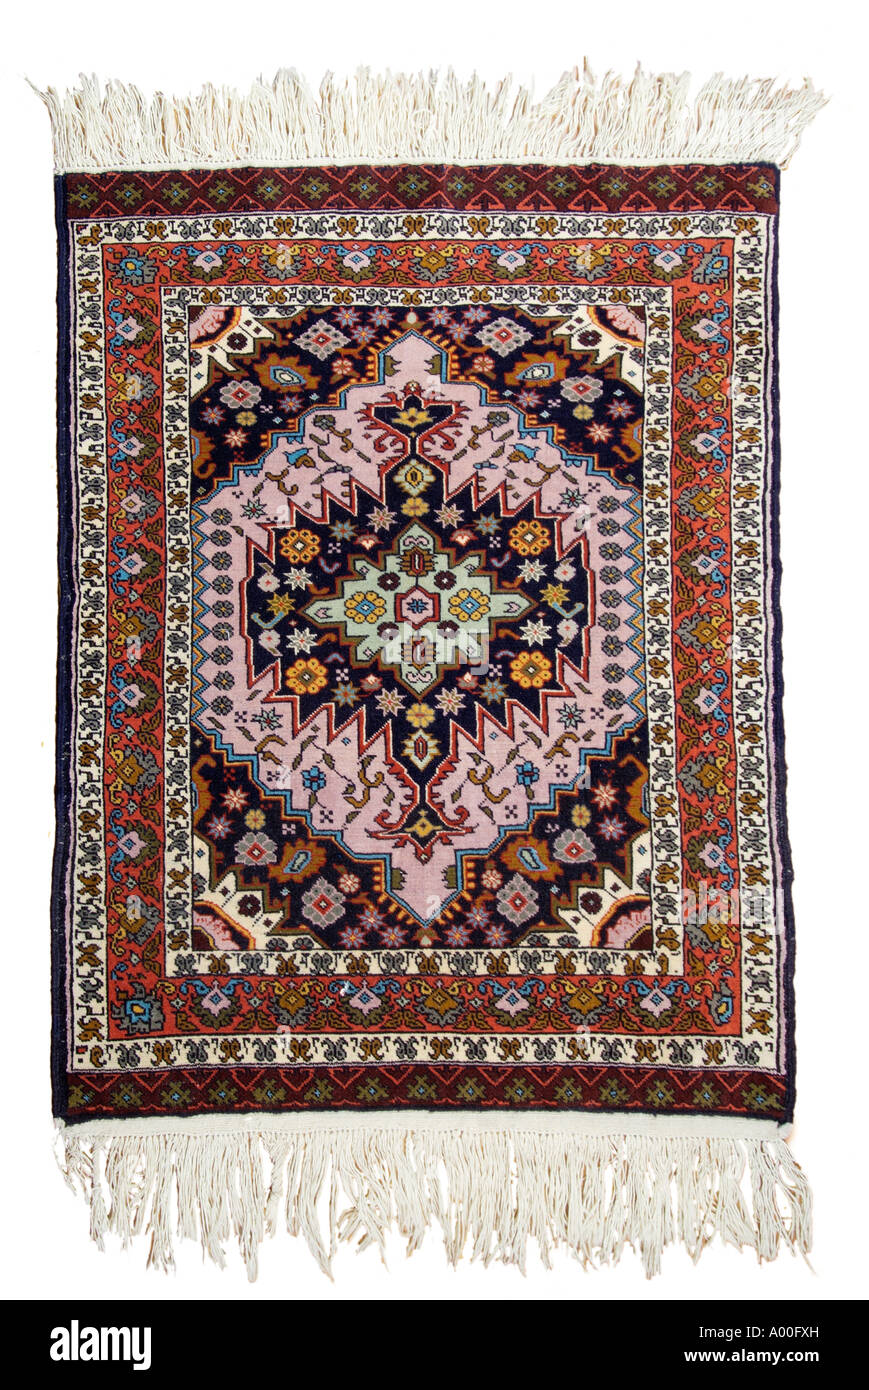 Carpet rug Iran Iranian Persia Persian near Middle East regional region Asia minor north east South west - Stock Image